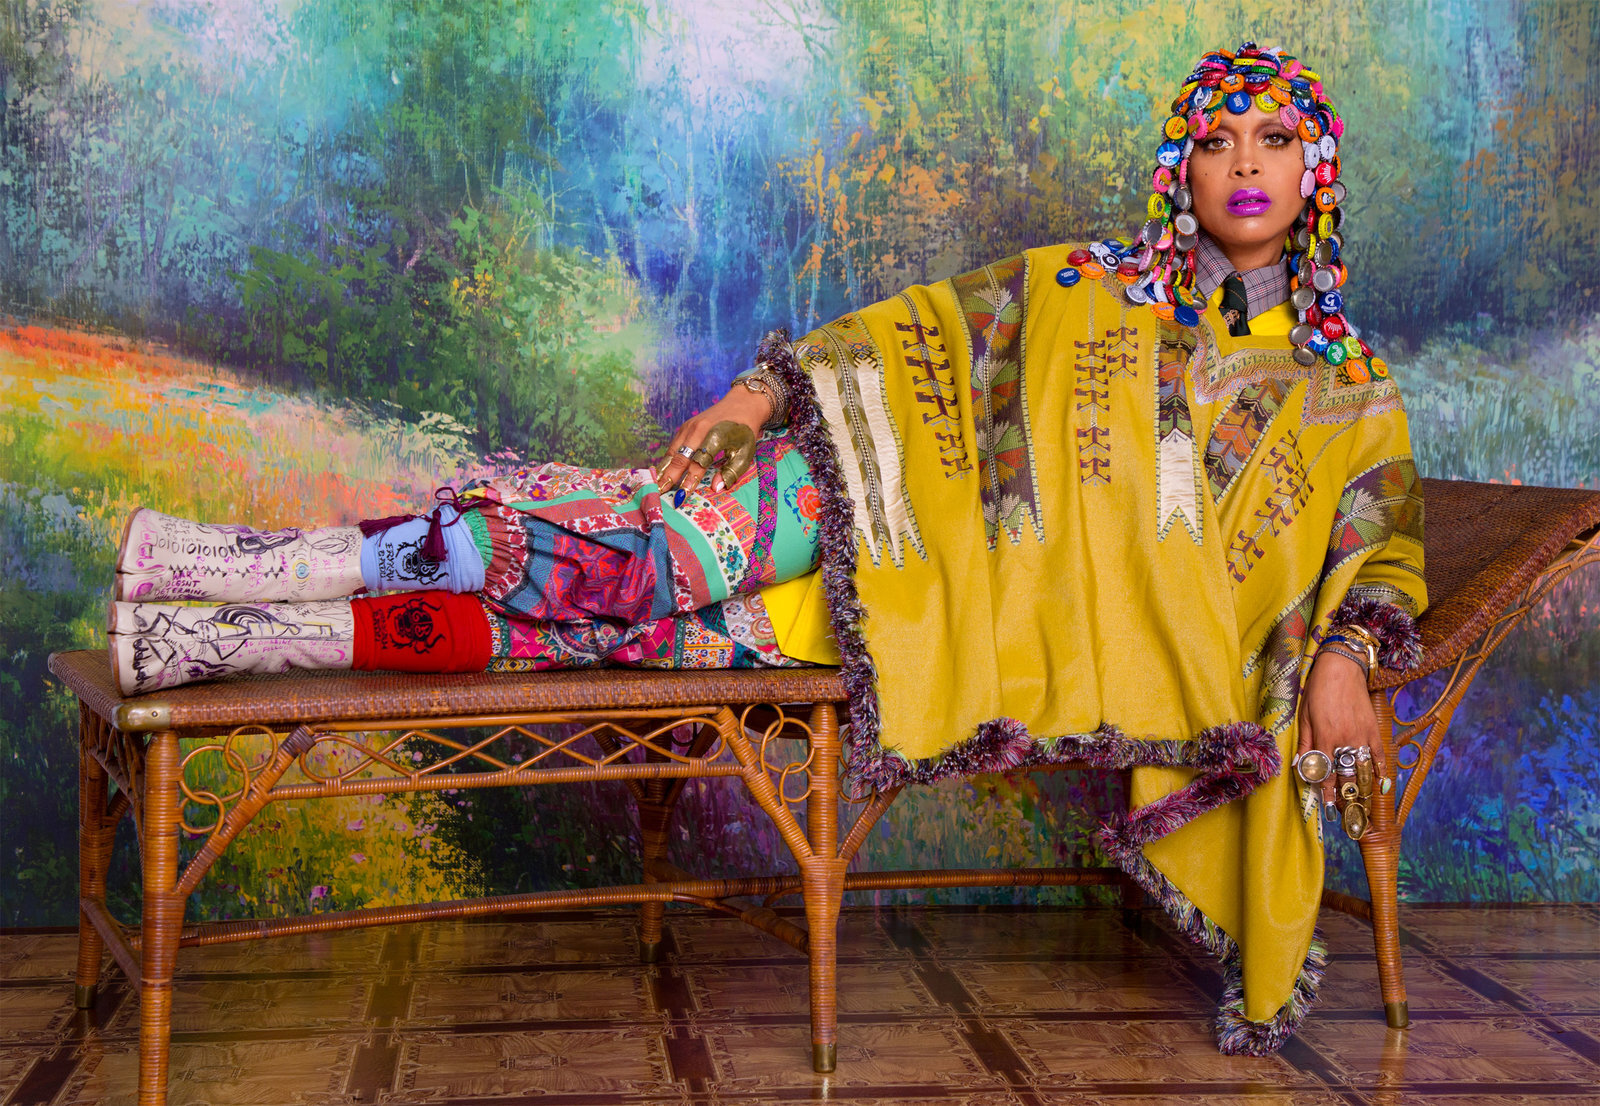 Badu in an Etro cape and pants and Raf Simons coat, shirt, and tie. From Badu's collection: a Badu x Chioma Obiegbu headpiece; a Badu x Lillian Shalom grill; Angostura rings and finger casts; Into Into nail rings; watches and bracelets; Badu World Market socks; and Maison Margiela tabi boots custom designed by Badu